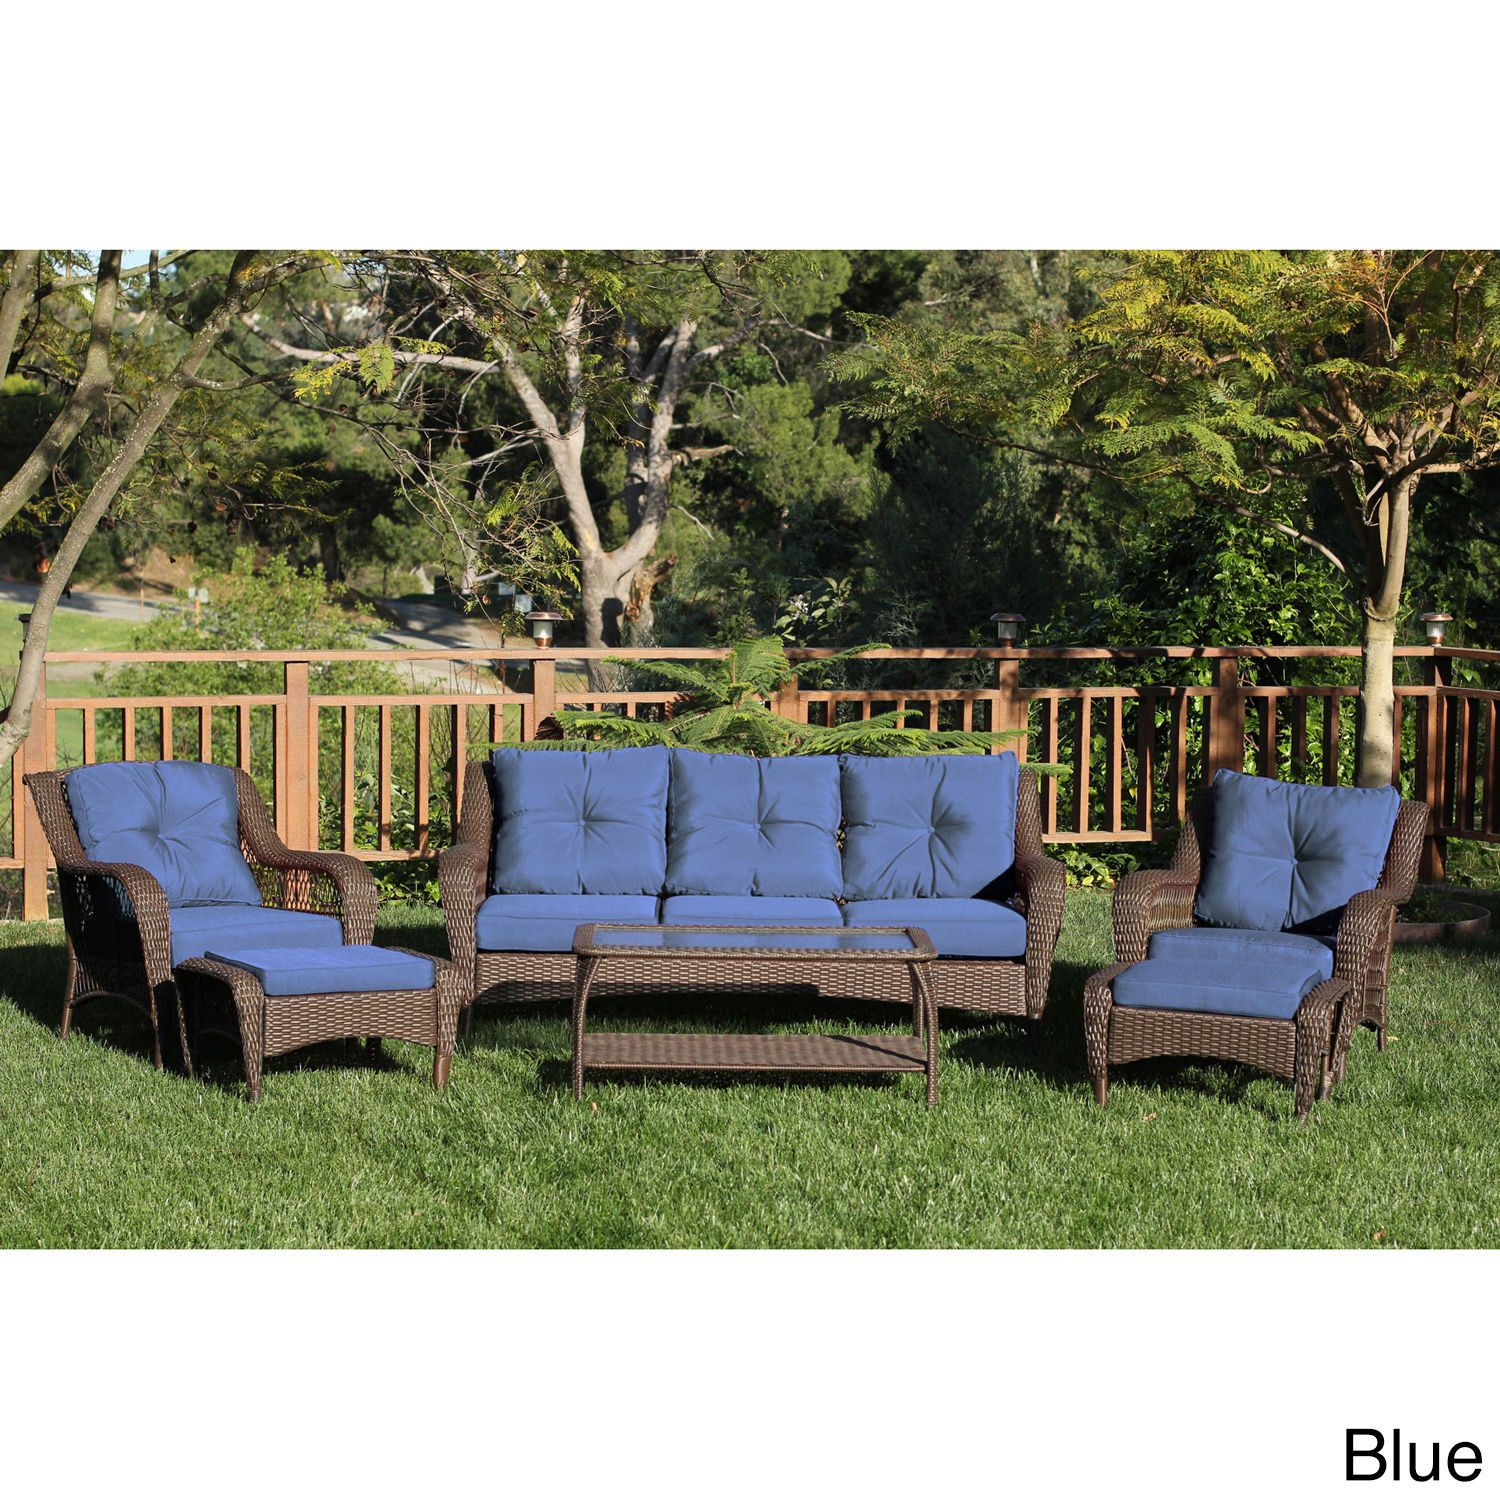 6 PC Outdoor Wicker Patio Furniture Set Resin Table Chairs Sofa